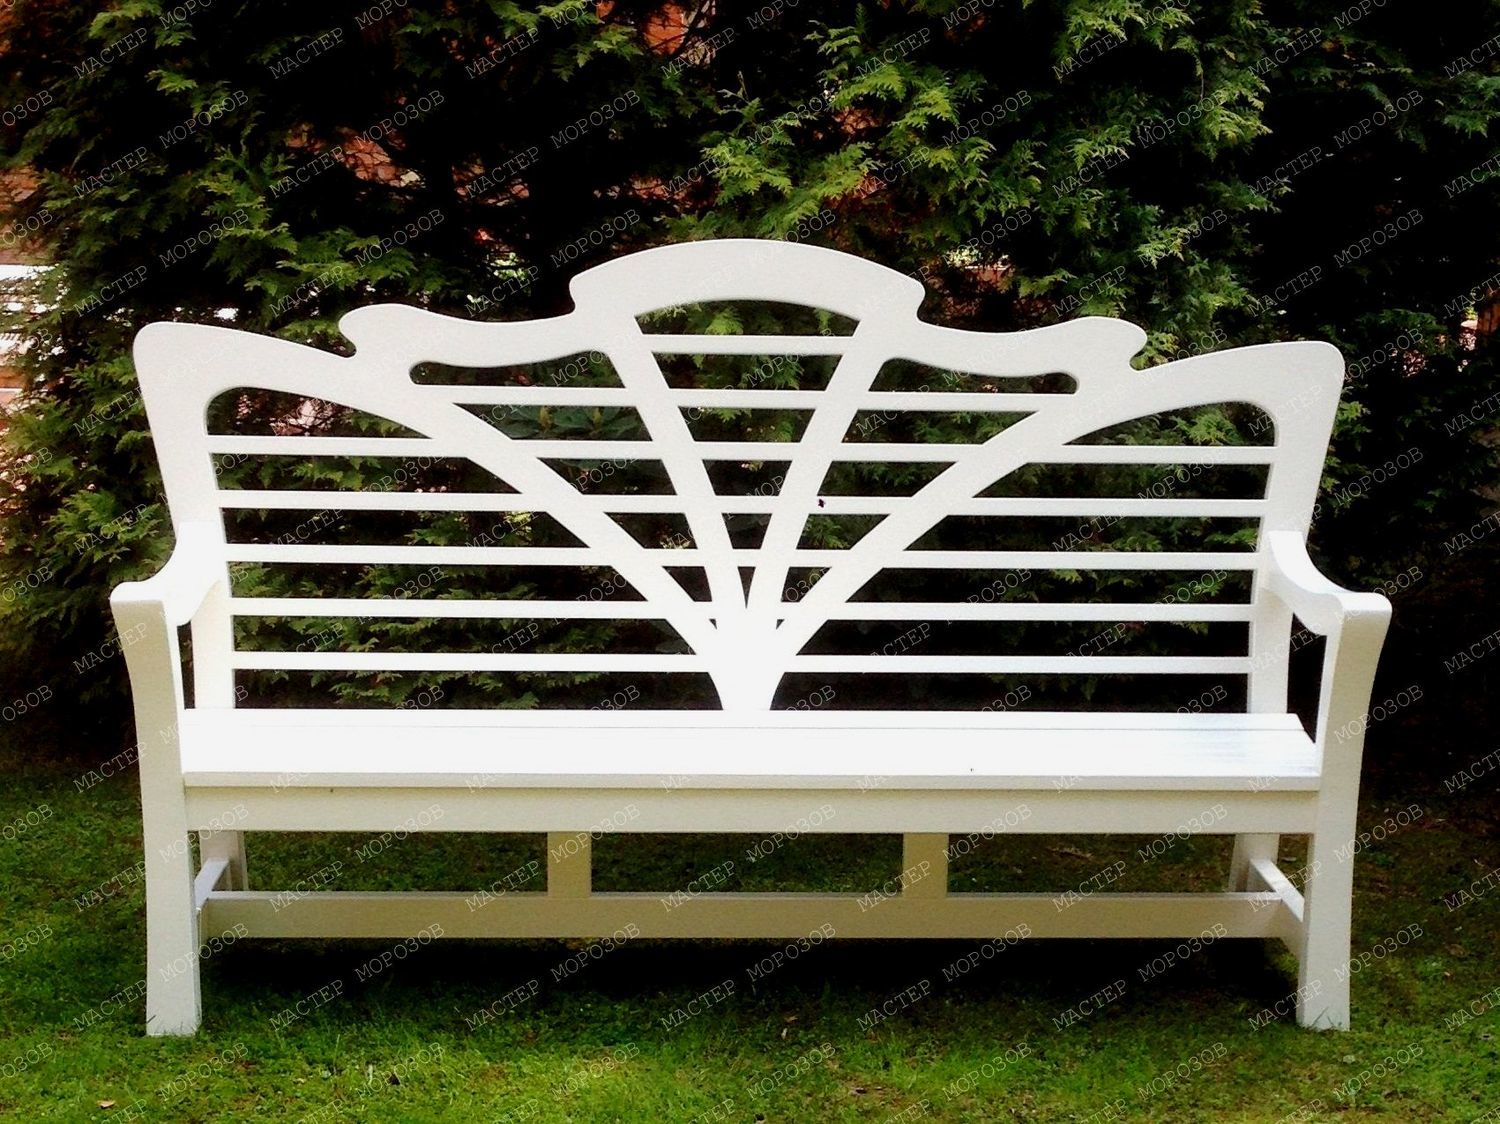 BENCH THE PERFECT LADY, Garden benches, Lyubertsy,  Фото №1